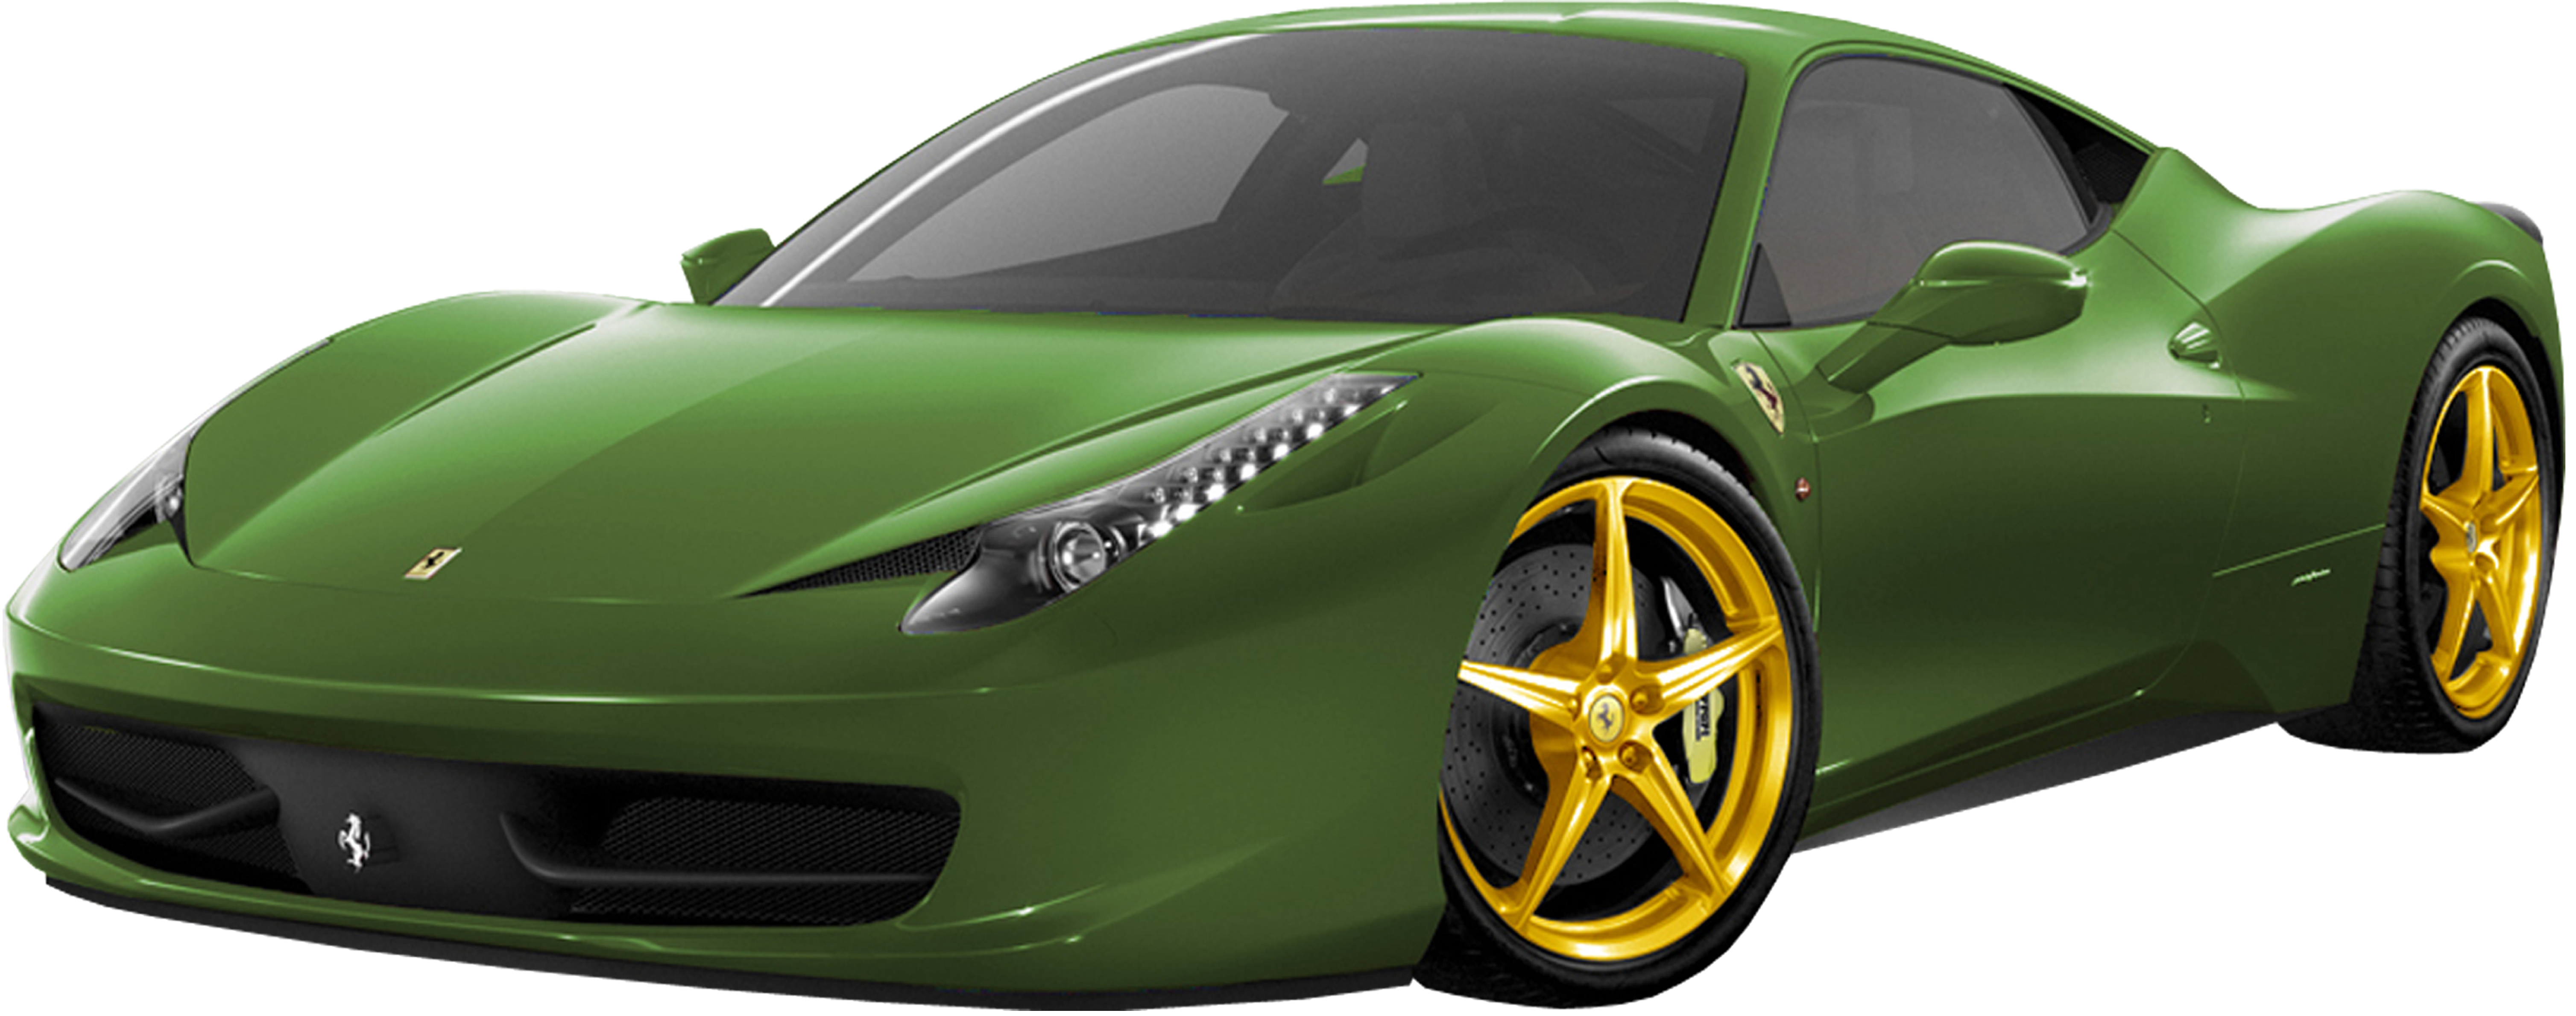 Ferrari Coupe Clipart 20 Free Cliparts Download Images